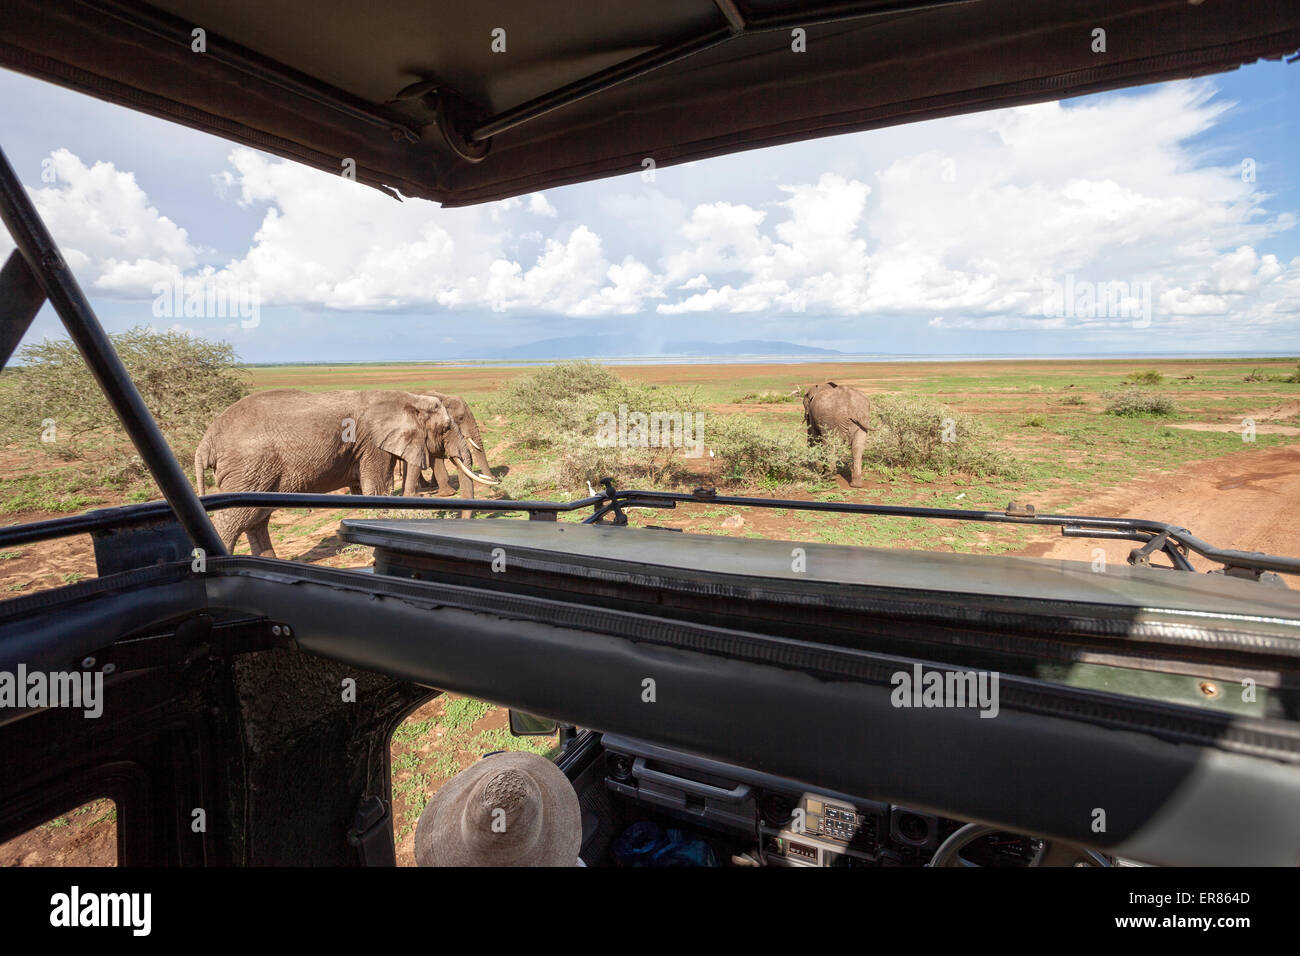 Safari at Lake Manyara National Park, Tanzania - Stock Image